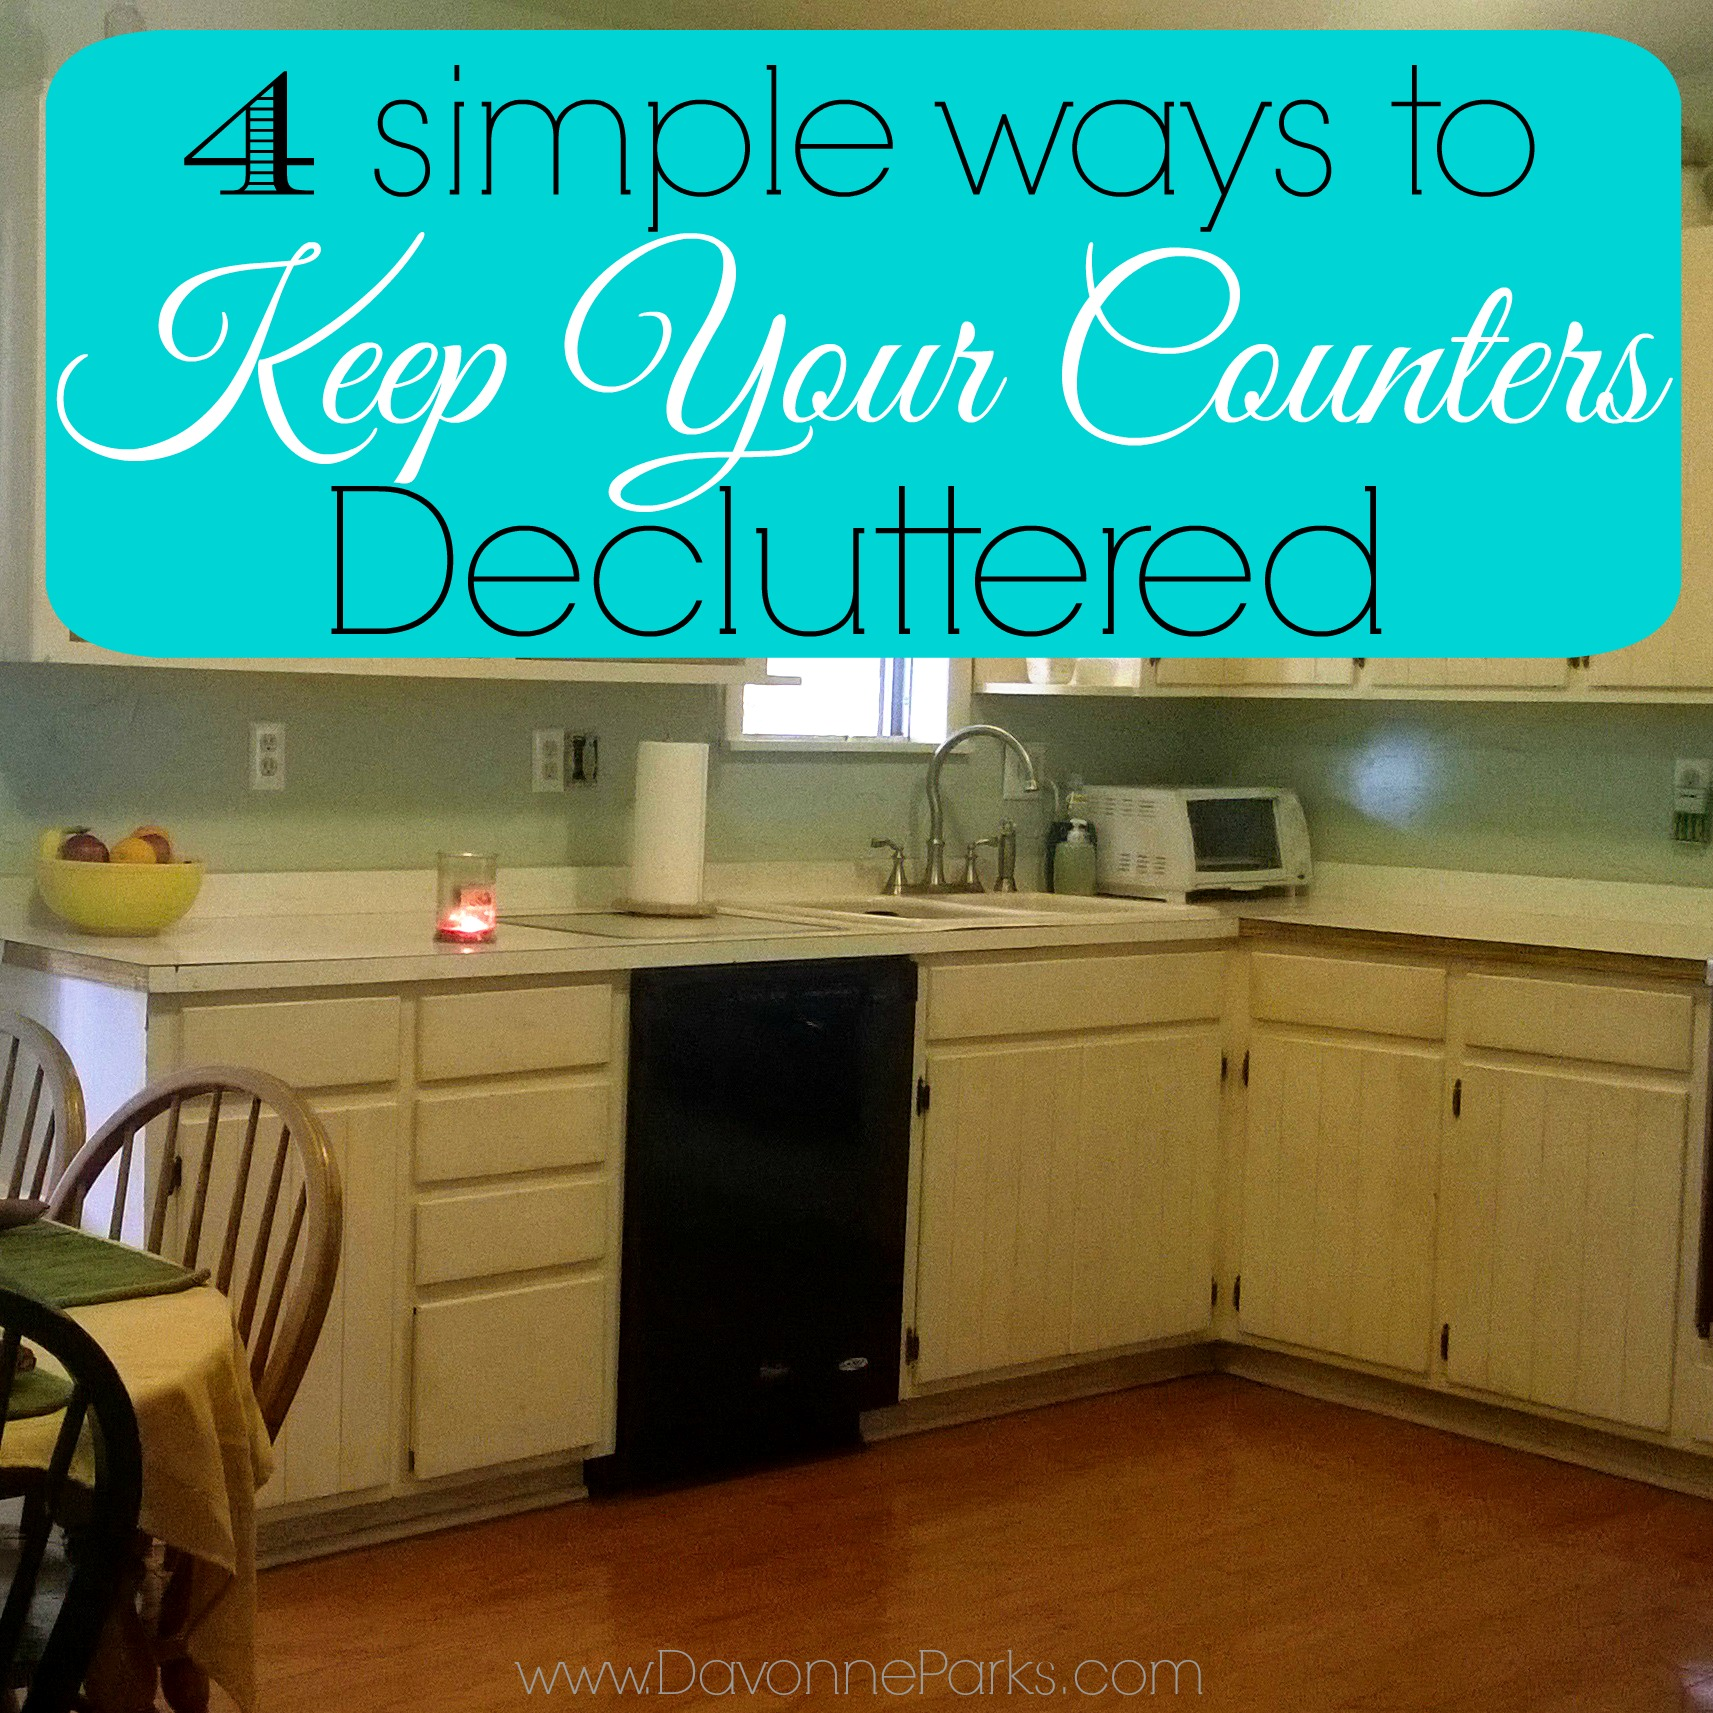 Messy Kitchen Counter: 4 Simple Ways To Keep Your Counters Decluttered